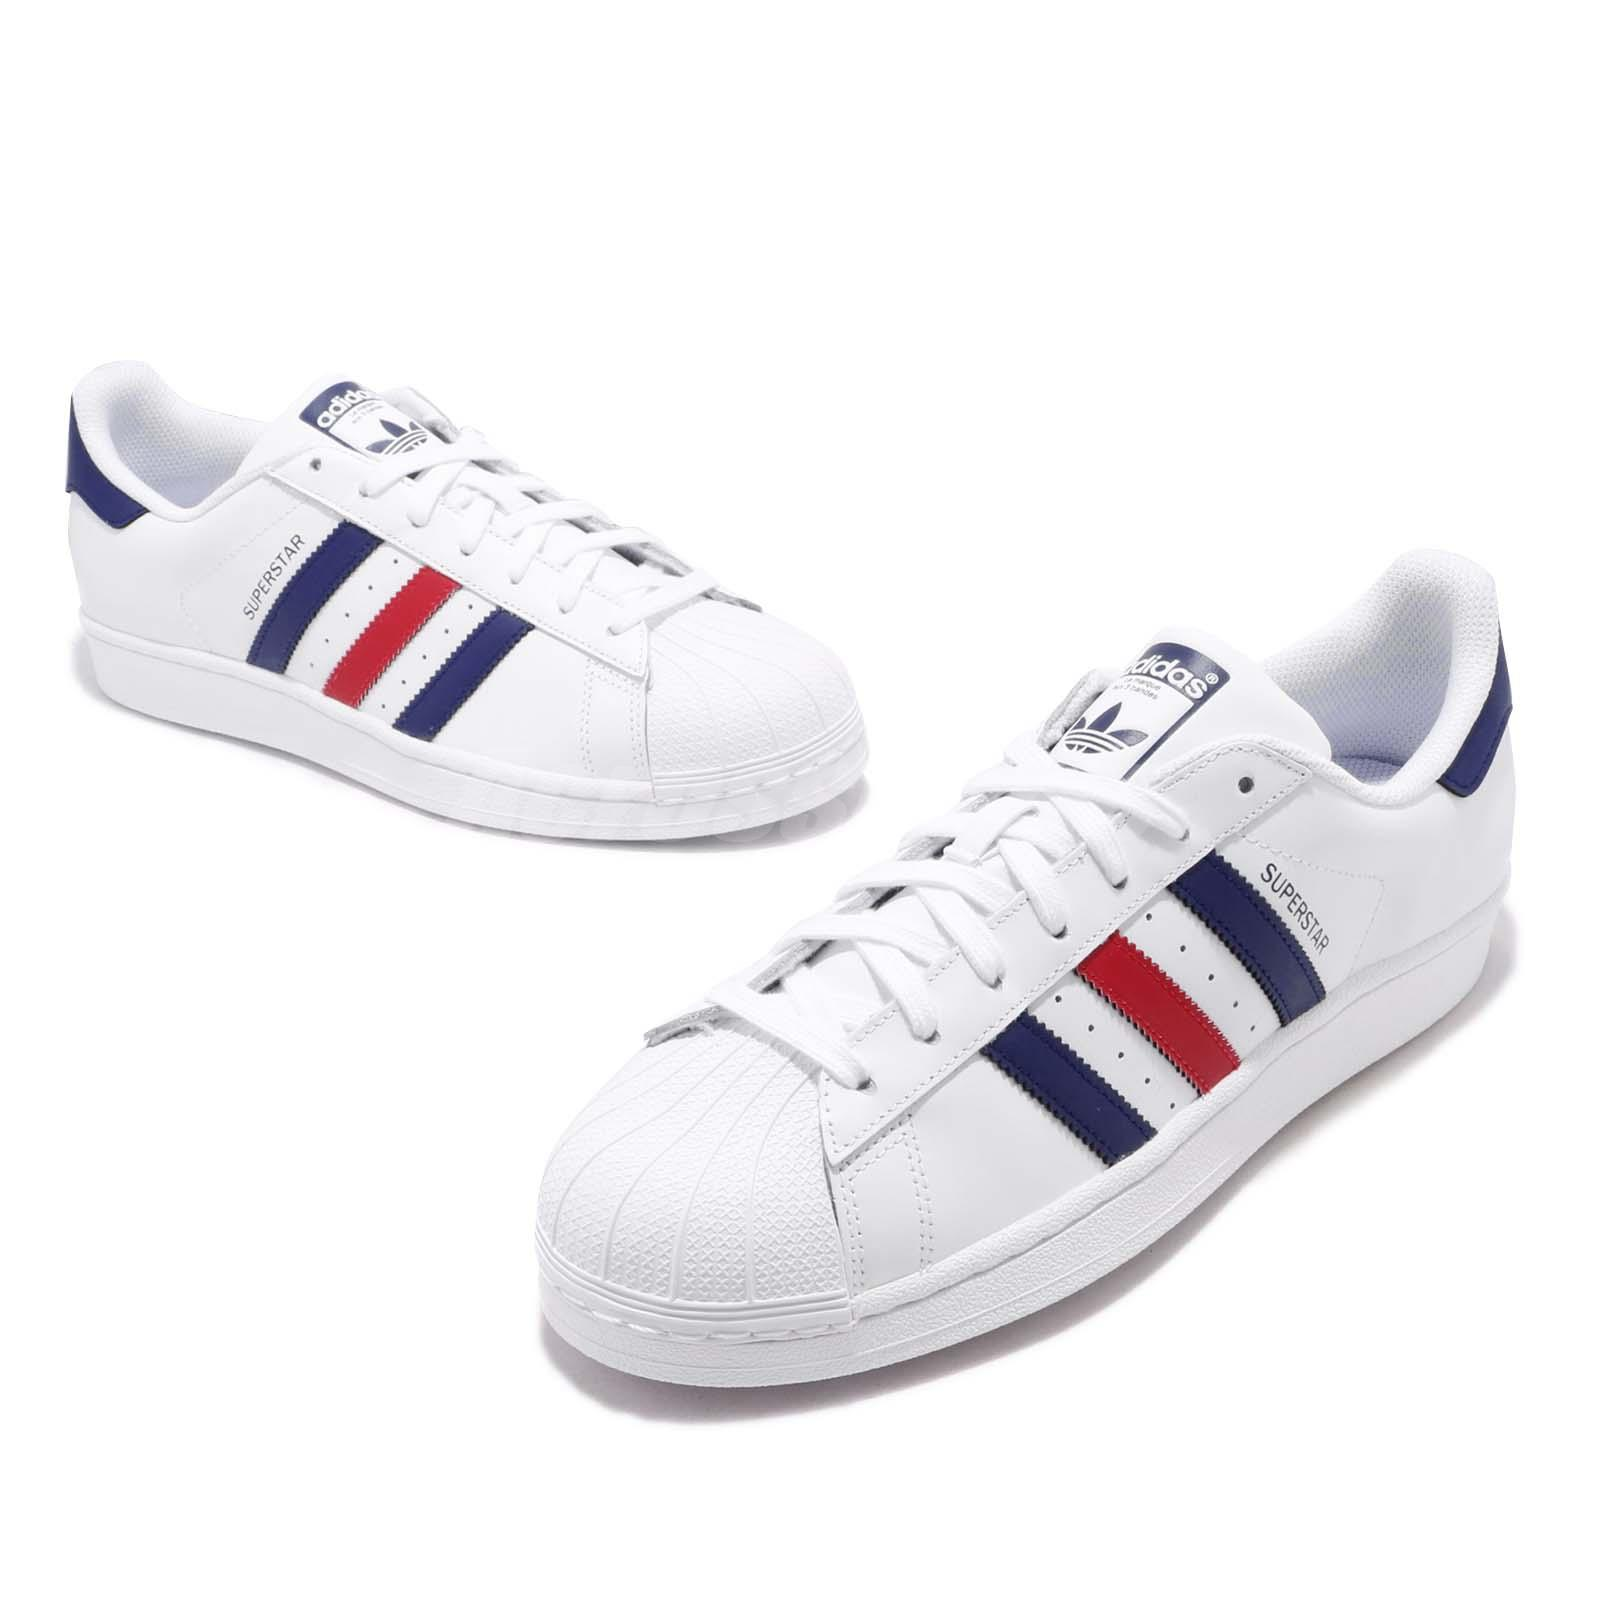 purchase cheap 0078b 3a4fd Details about adidas Originals Superstar FD White Blue Red Men Casual Shoes  Sneakers F36583